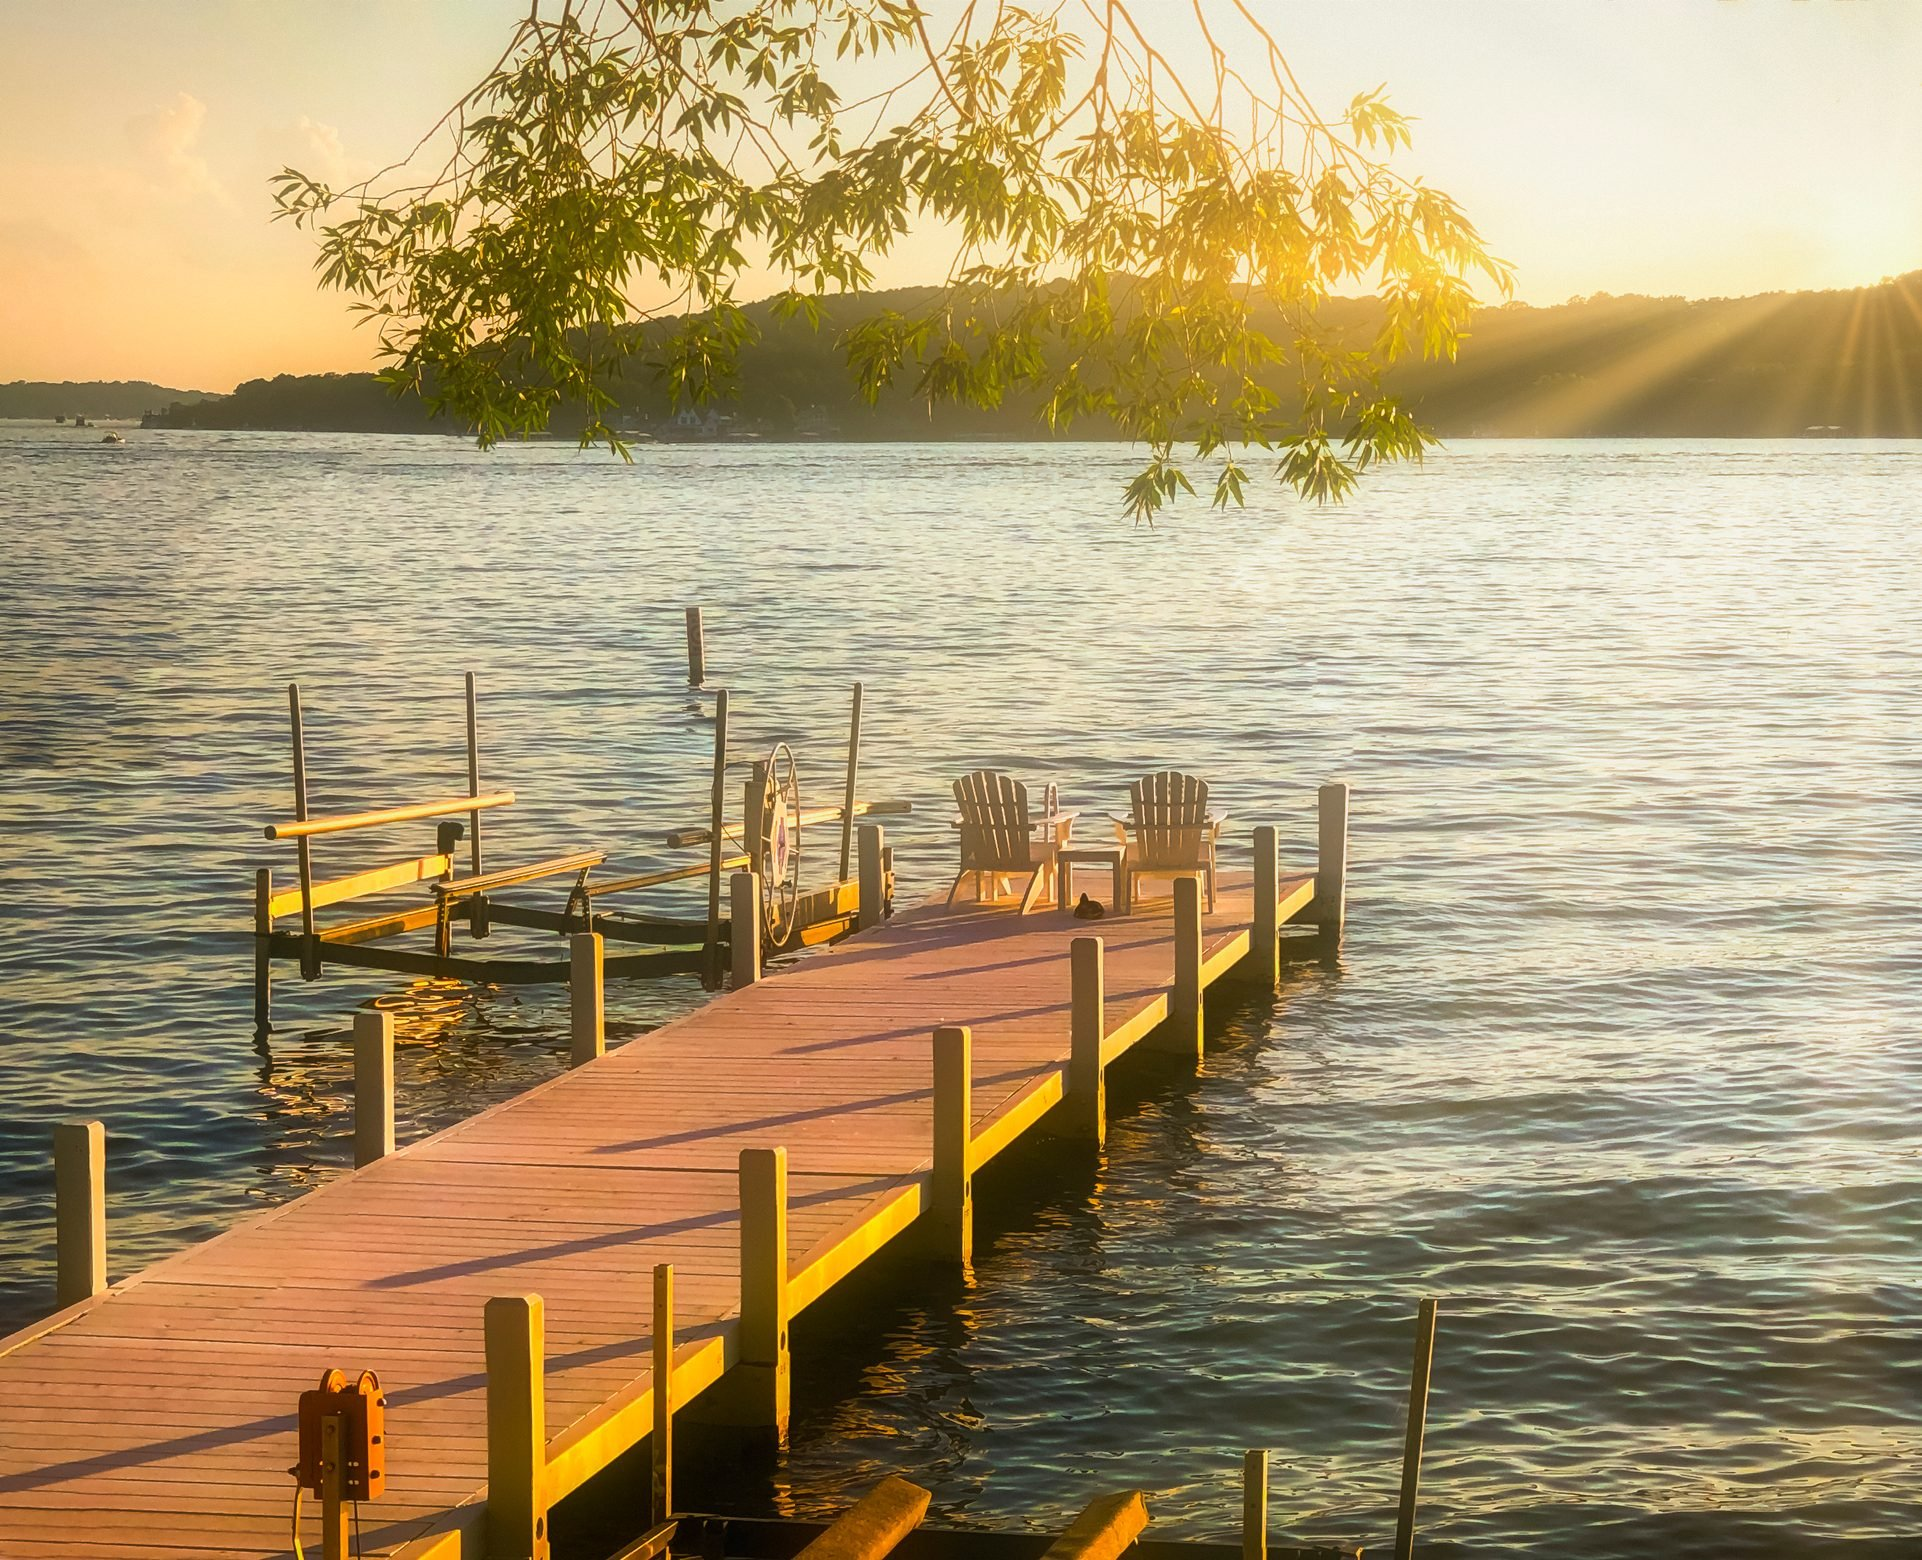 Lake Geneva Pier with Chairs at Sunset